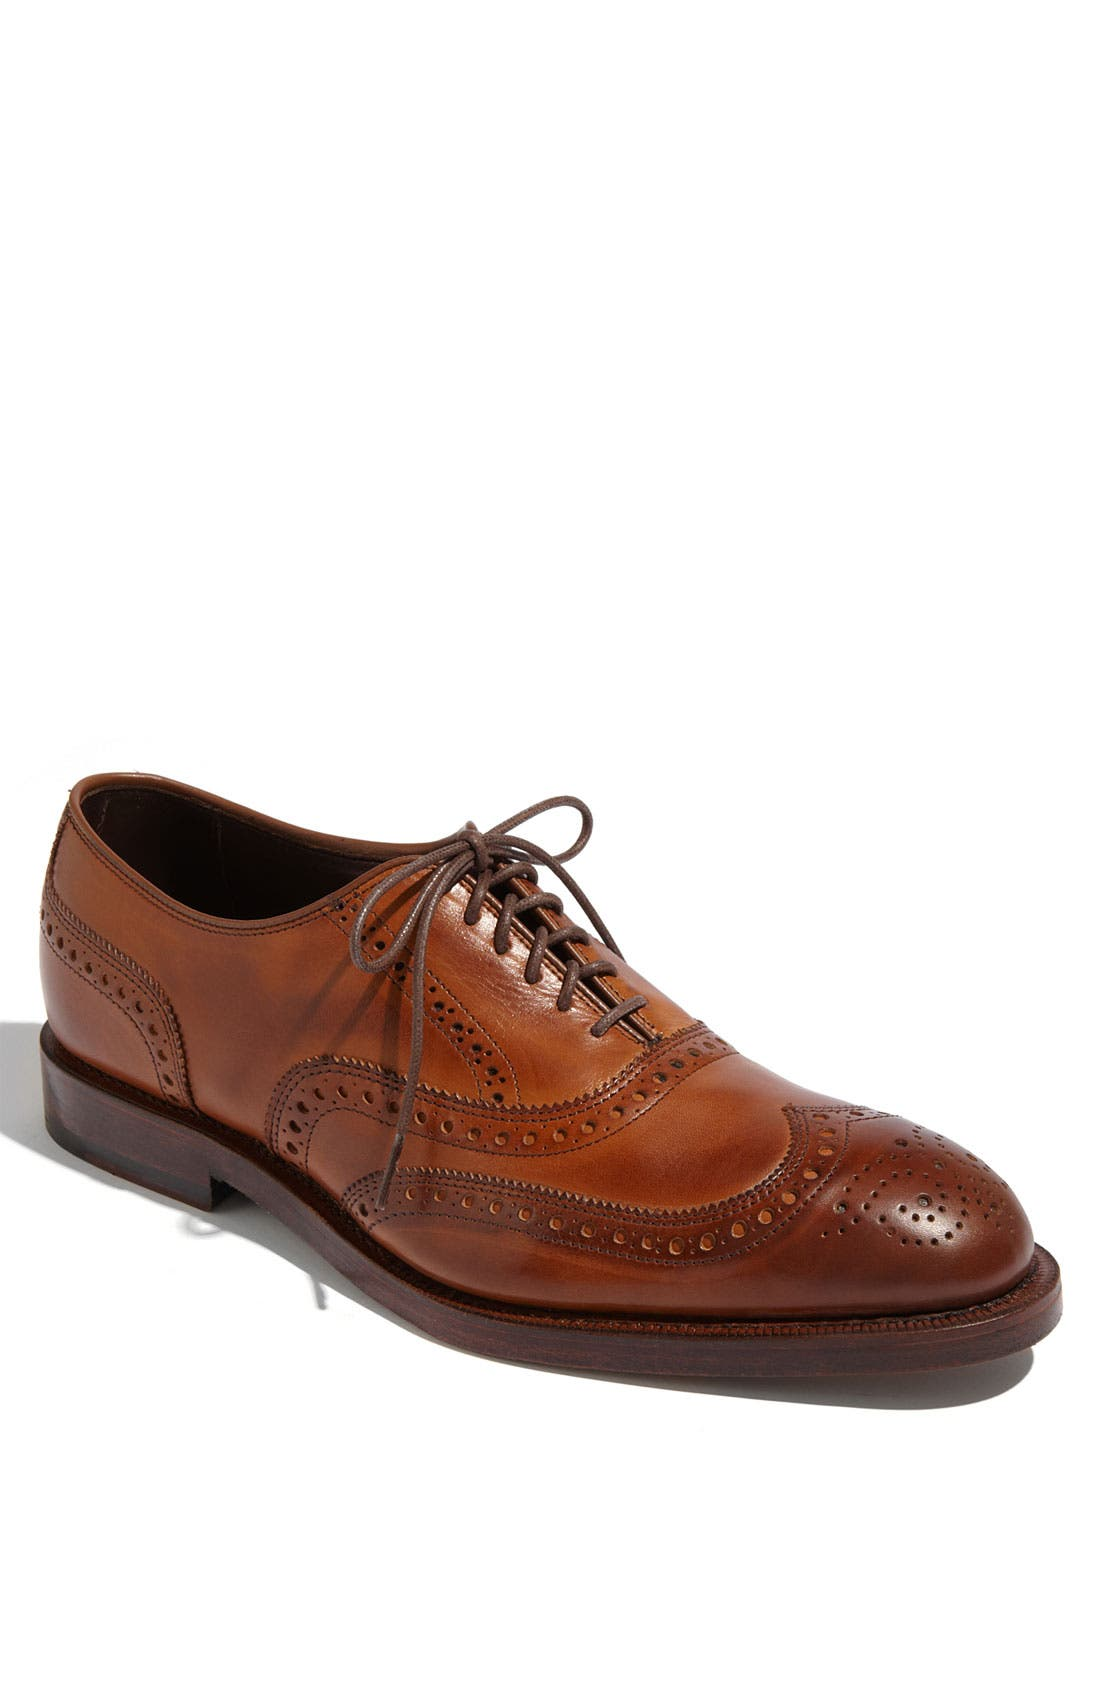 Alternate Image 1 Selected - Allen Edmonds 'The Jefferson' Wingtip Oxford (Men)